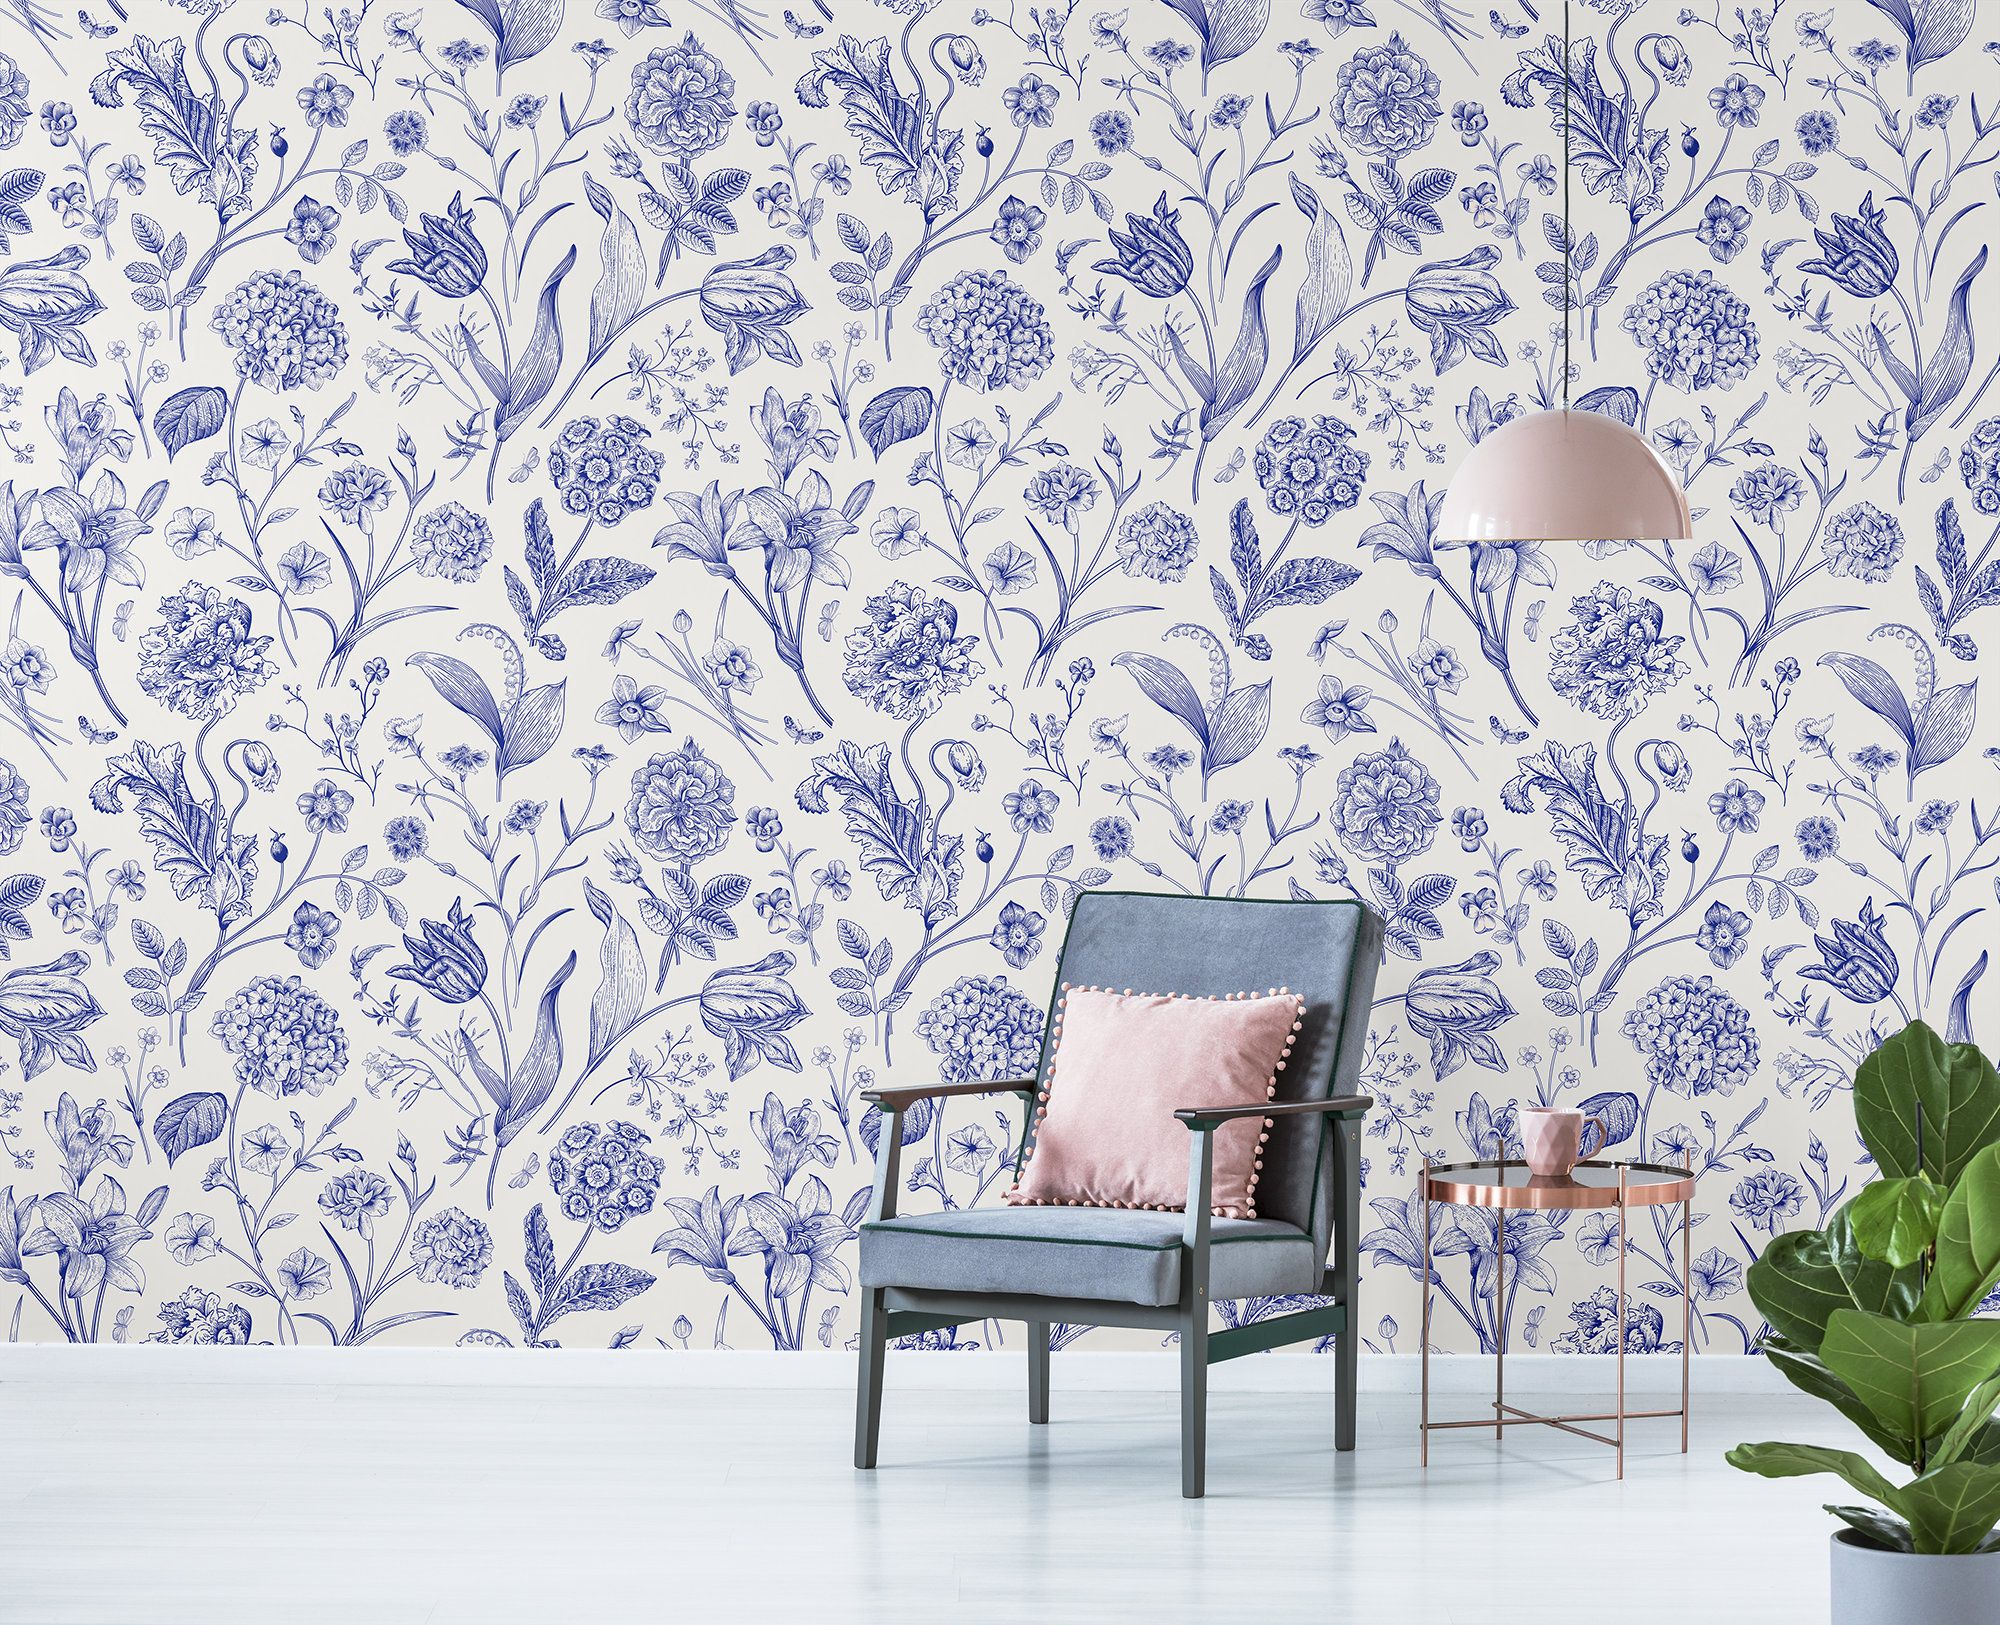 White wallpaper with blue floral pattern, self adhesive